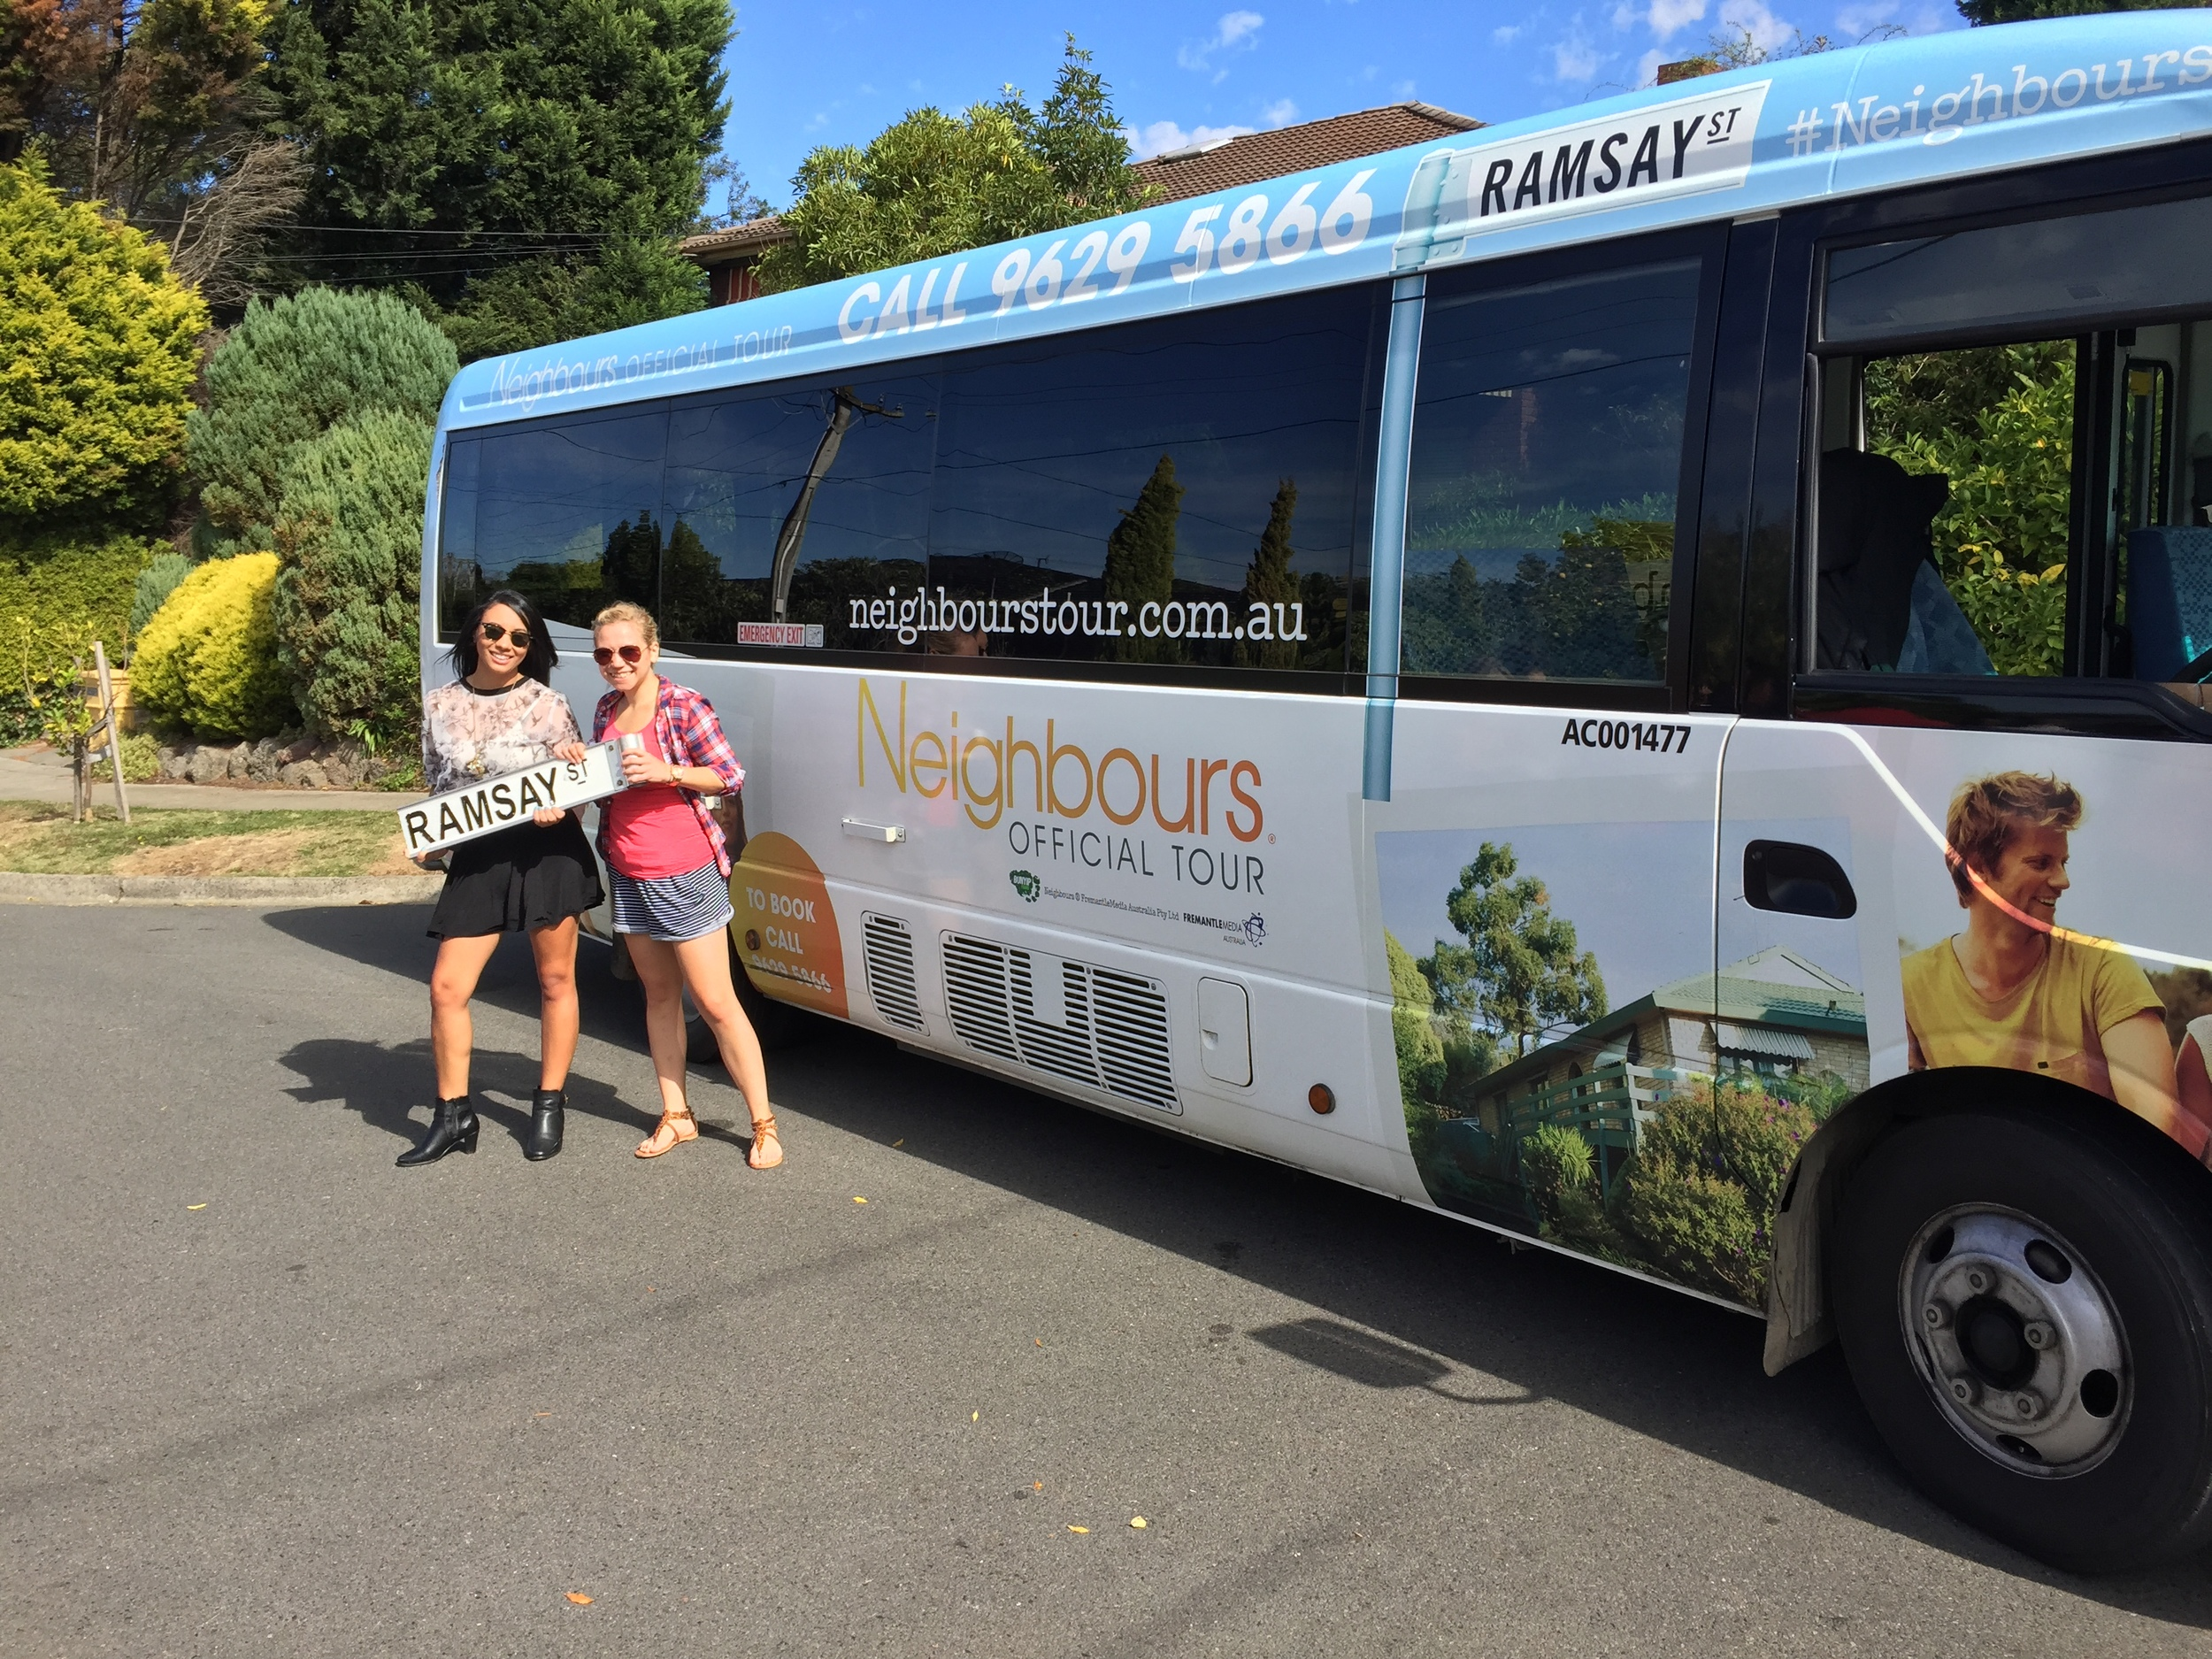 Fans holding Ramsay St sign in front of Bunyip Tours Bus